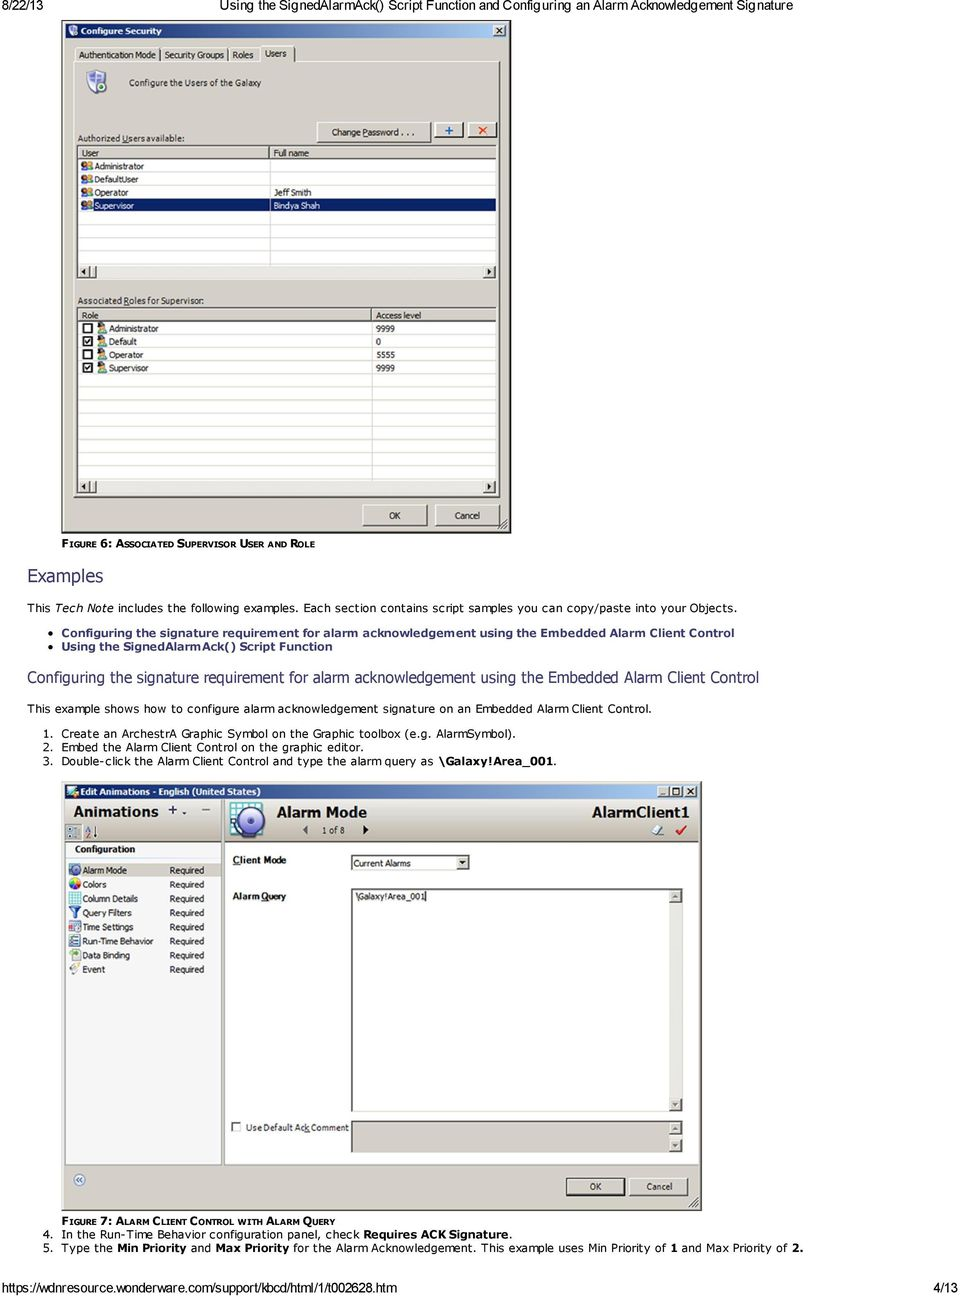 acknowledgement using the Embedded Alarm Client Control This example shows how to configure alarm acknowledgement signature on an Embedded Alarm Client Control. 1.